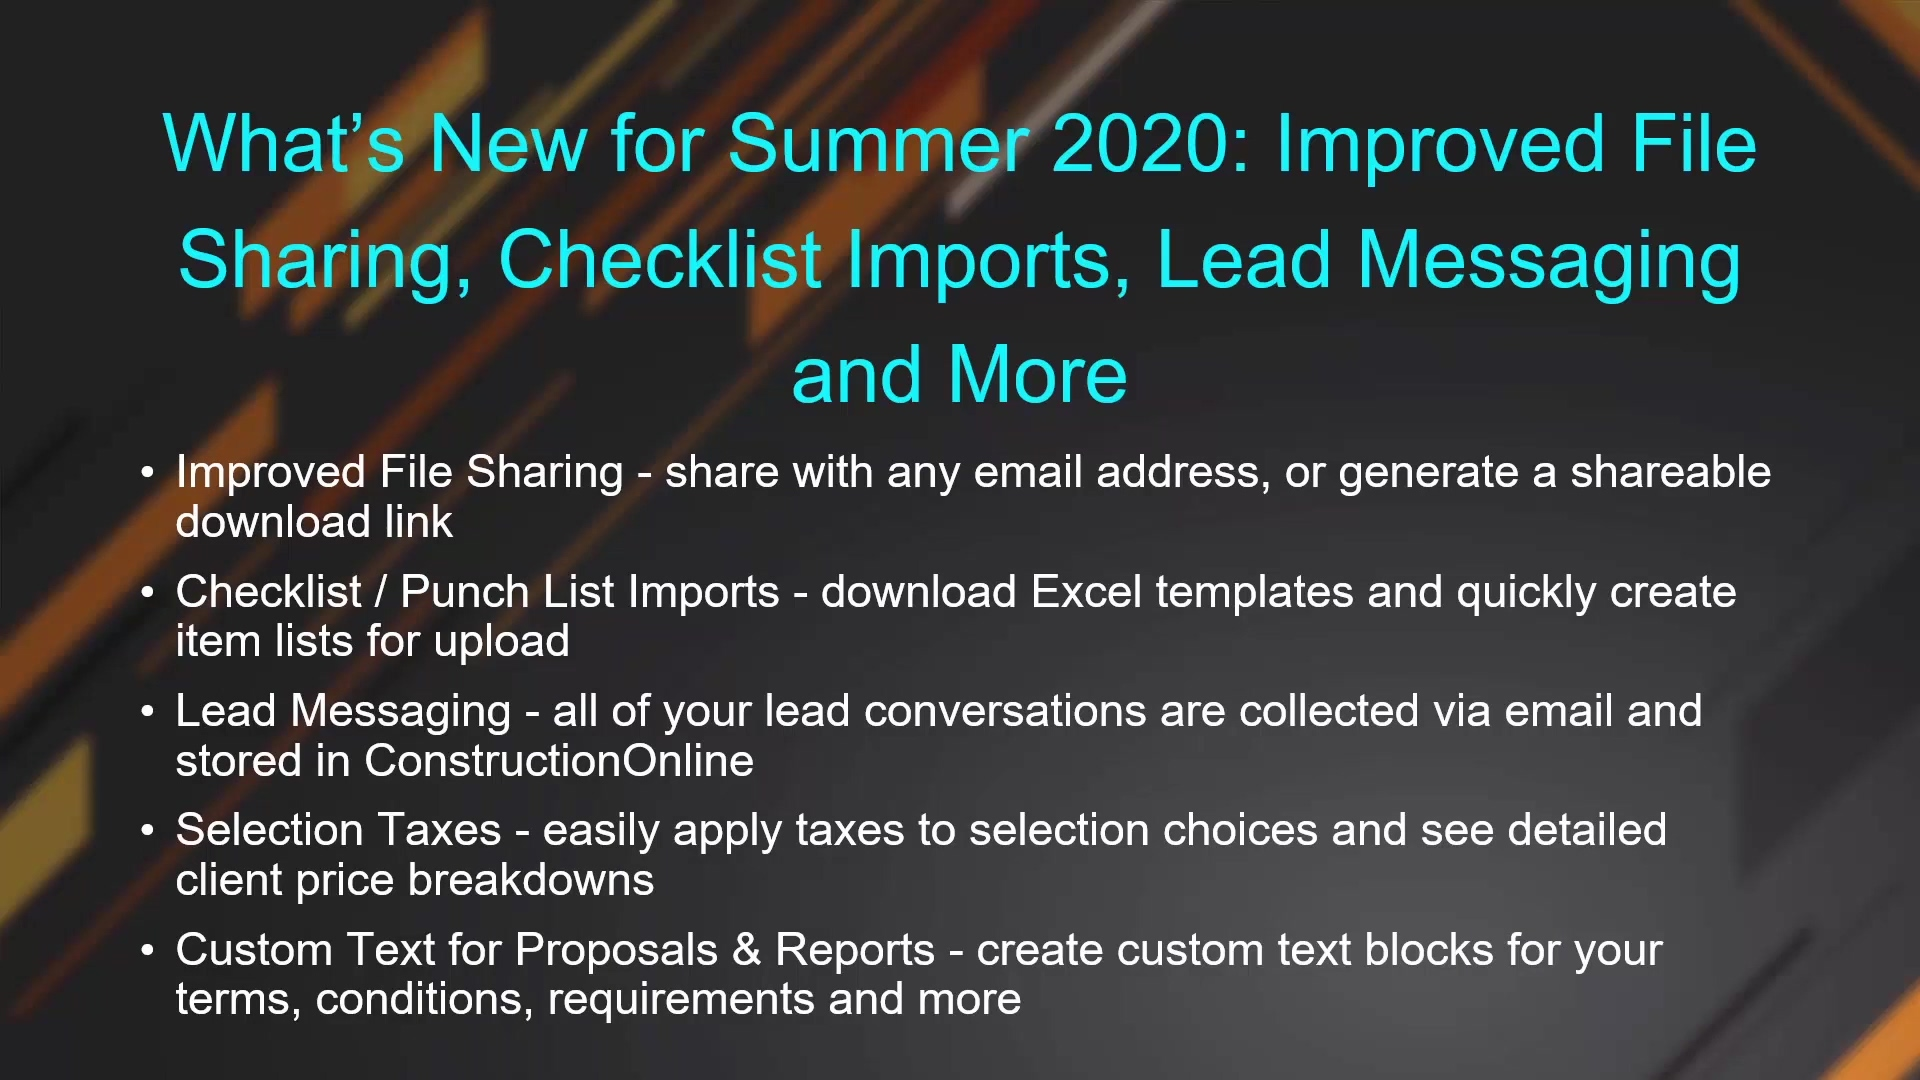 What's New for Summer 2020 - Improved File Sharing, Checklist Imports, Lead Messaging and More